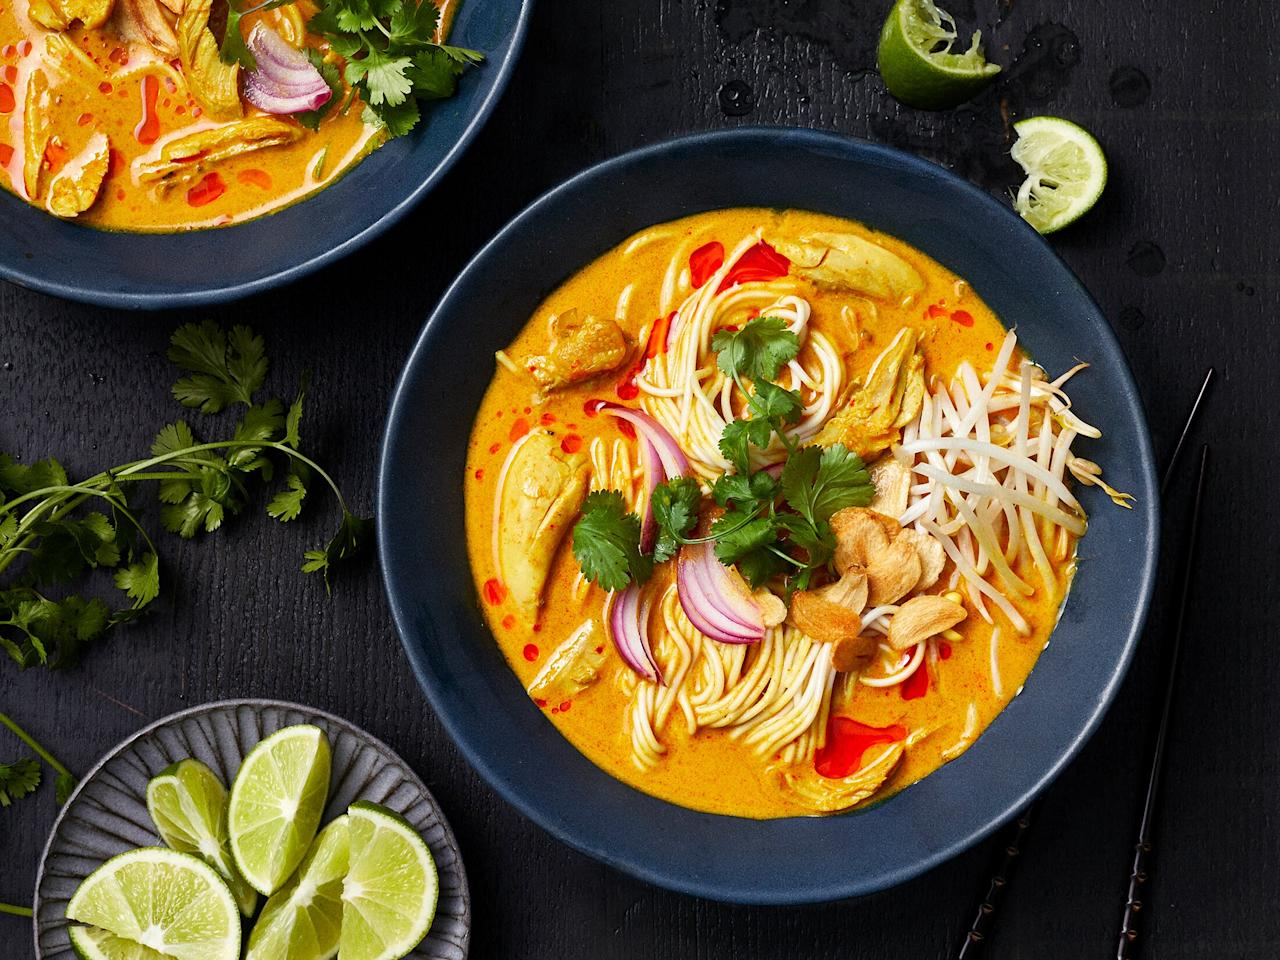 "<p>What gives this easy Khao Soi its incredible flavor backbone is the homemade curry paste. It's easier to whip up in the food processor than you might think and we'd strongly recommend giving it a try. However, if you find yourself pinched for time, you can substitute 3-4 tablespoons of store-bought curry paste. Lemongrass is easily sourced at specialty or Asian markets; however, if you have trouble finding it fresh, you can find a super convenient lemongrass paste in the produce section of many conventional grocery stores. </p> <p><a href=""https://www.myrecipes.com/recipe/instant-pot-khao-soi"">Instant Pot Khao Soi Recipe</a></p>"